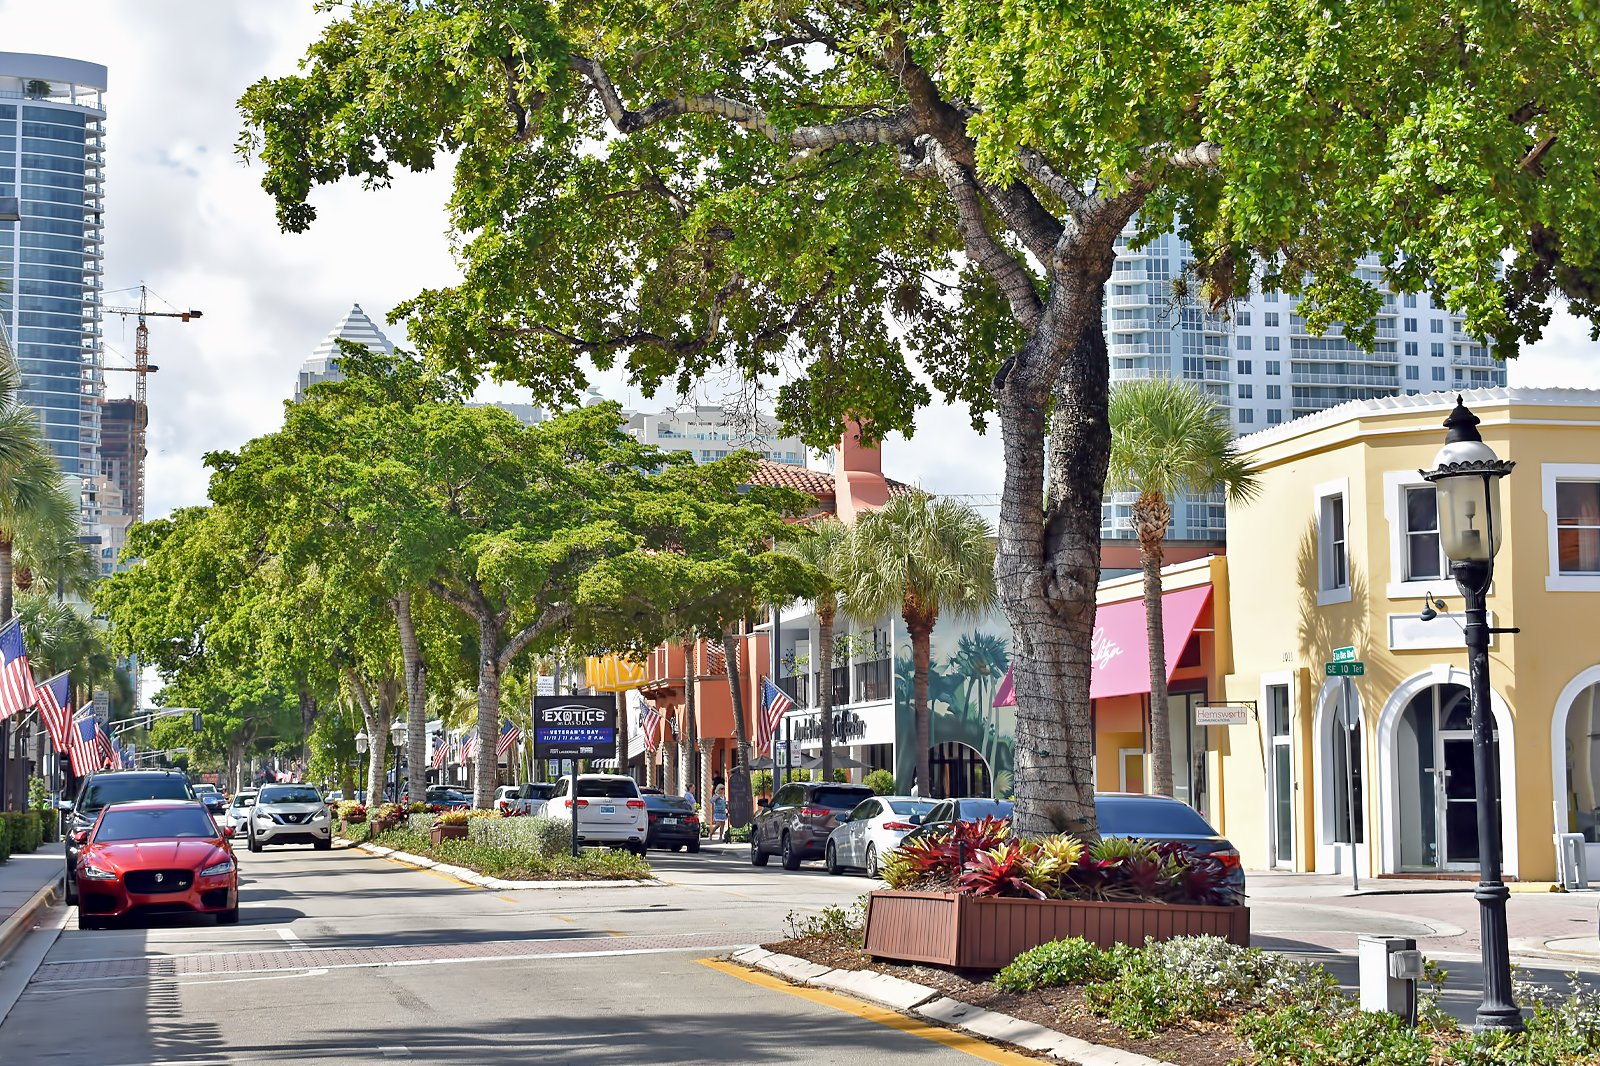 10 Things to Do in Fort Lauderdale in a Day - What is Fort Lauderdale Most Famous For?